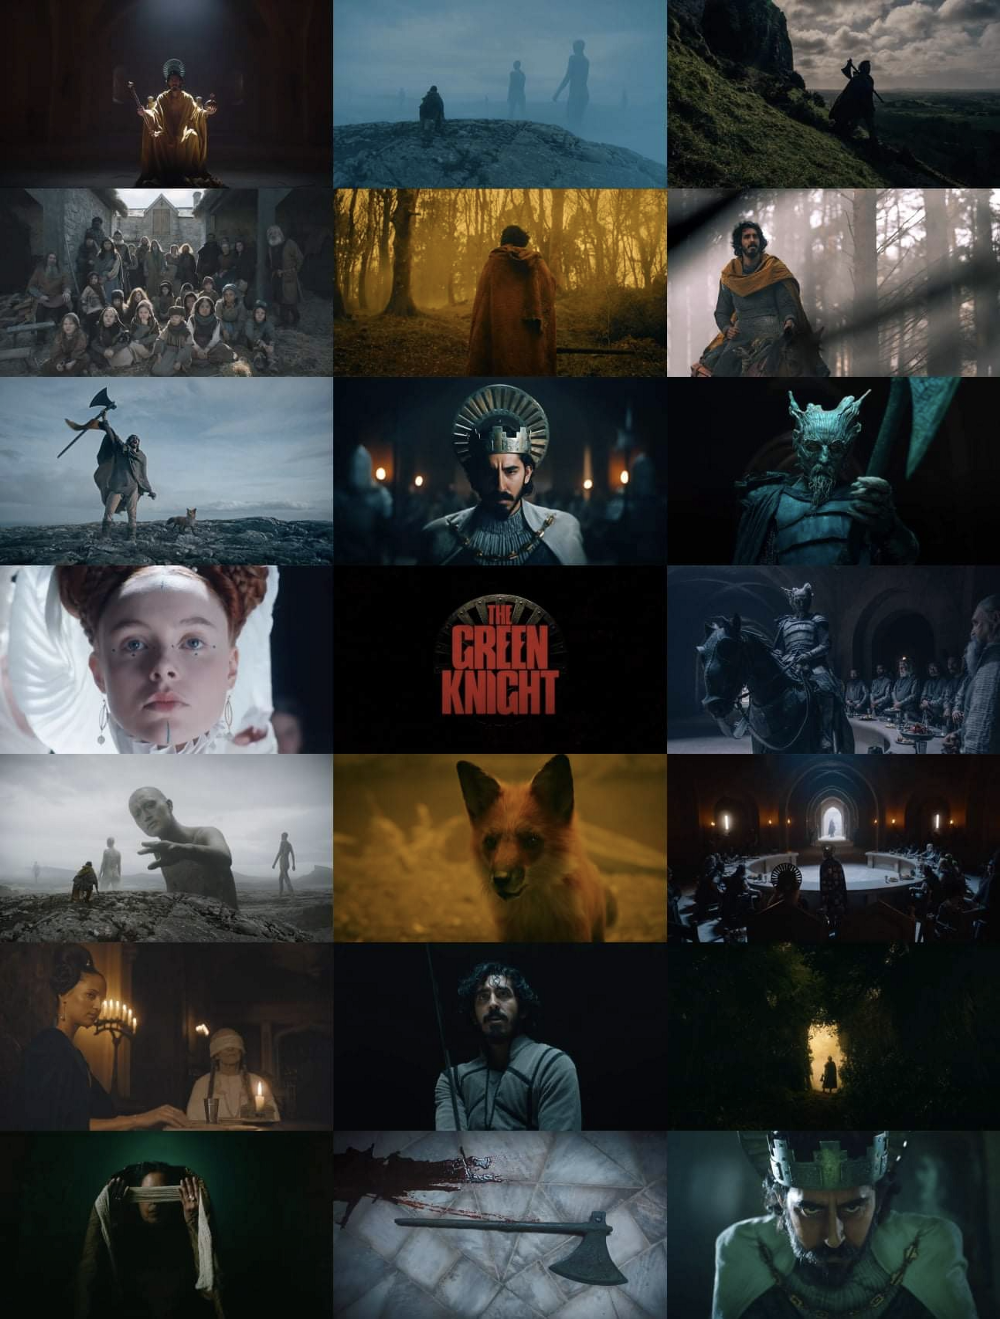 Various still images from the film THE GREEN KNIGHT